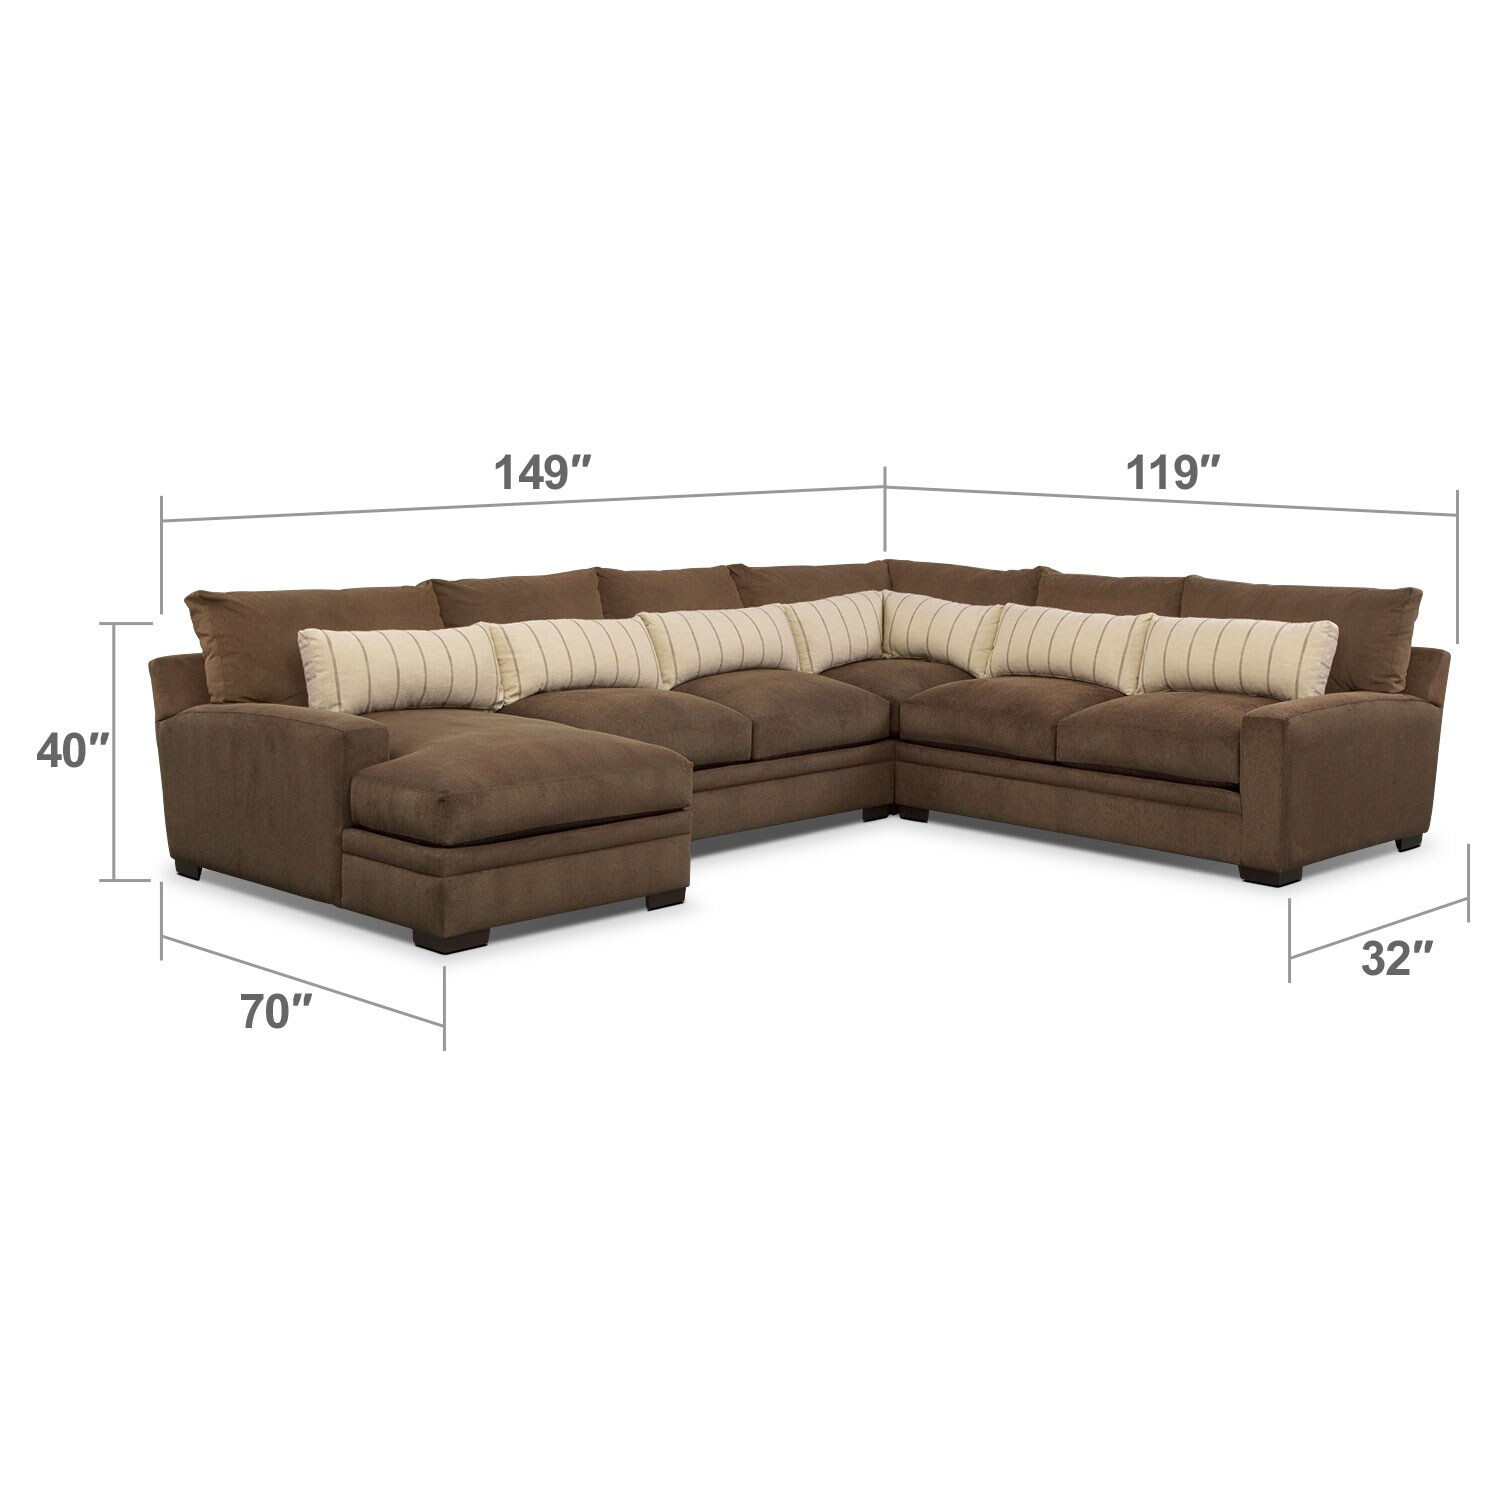 Living Room Furniture - Ventura 4-Piece Sectional with Left-Facing Chaise - Brown